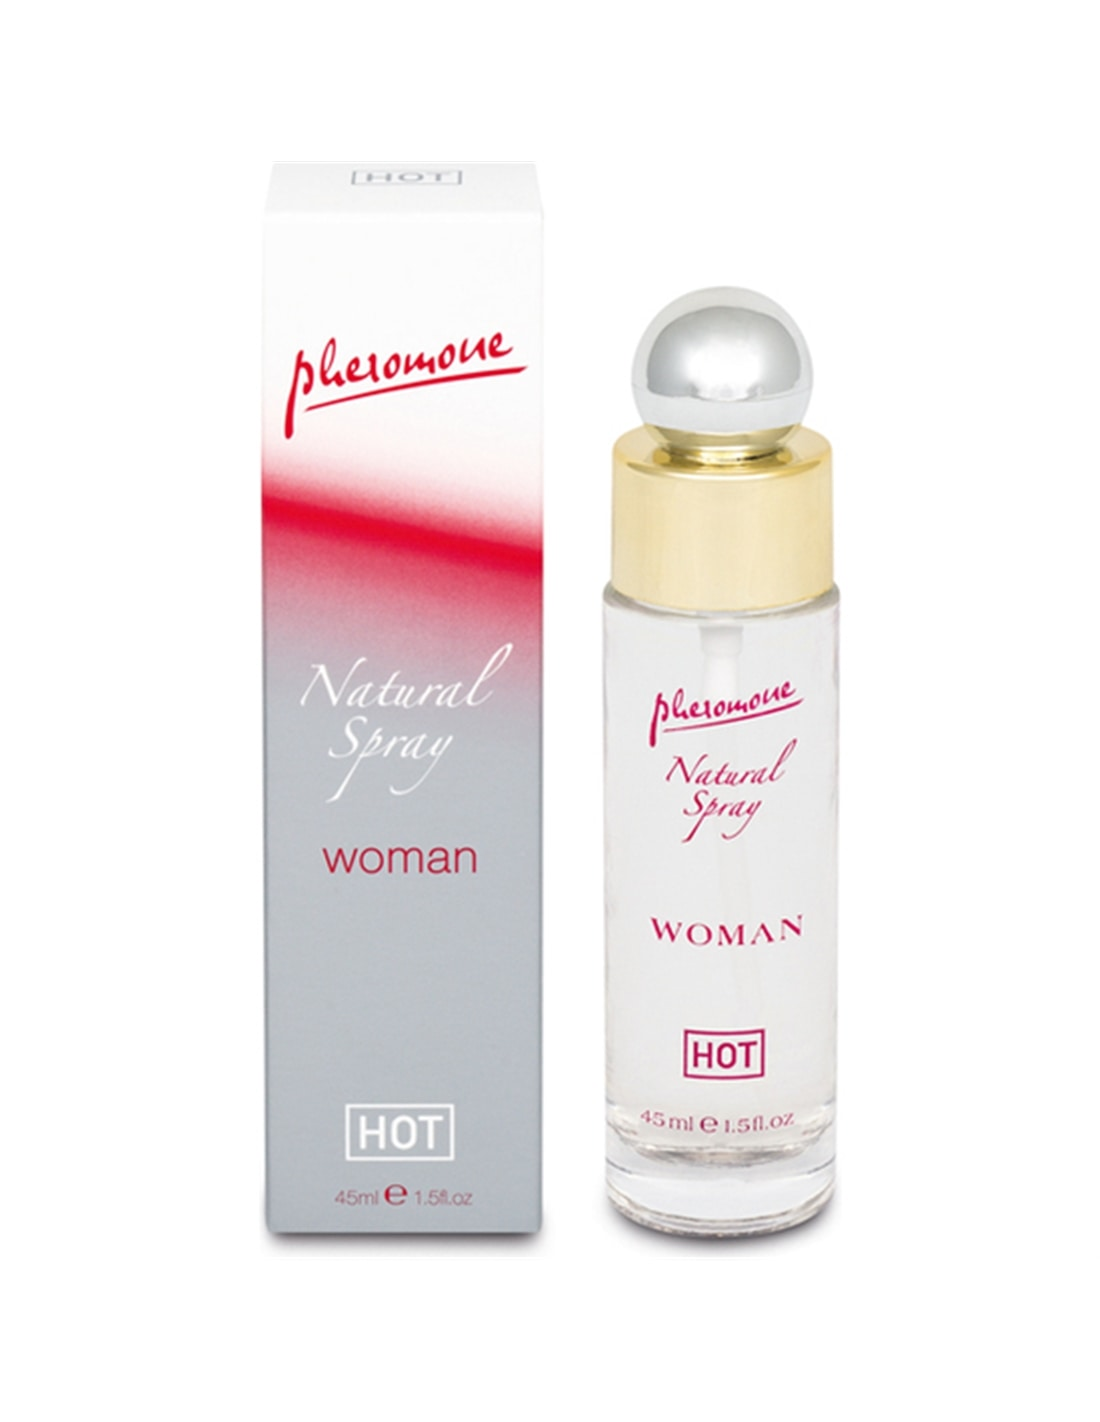 20586 - Perfume Com Feromonas Natural Spray Woman - 45ml-PR2010301291